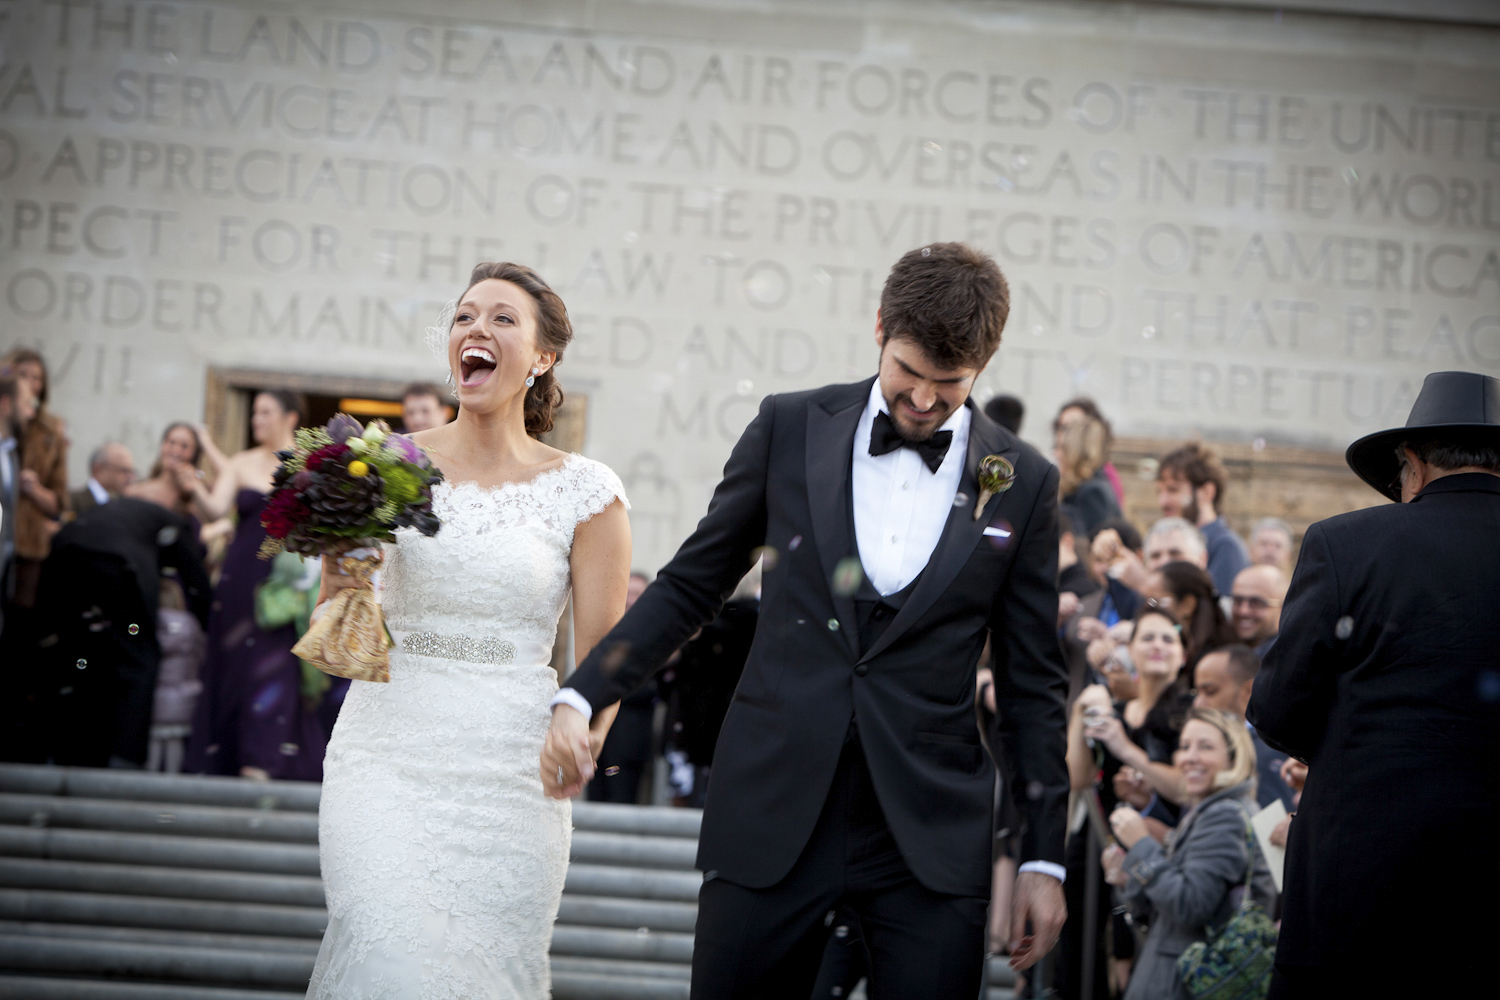 Indianapolis-Indiana-Wedding-Photographer-Crowes-Eye-Photography-War-memorial-Bride-and-Groom-exit.jpg